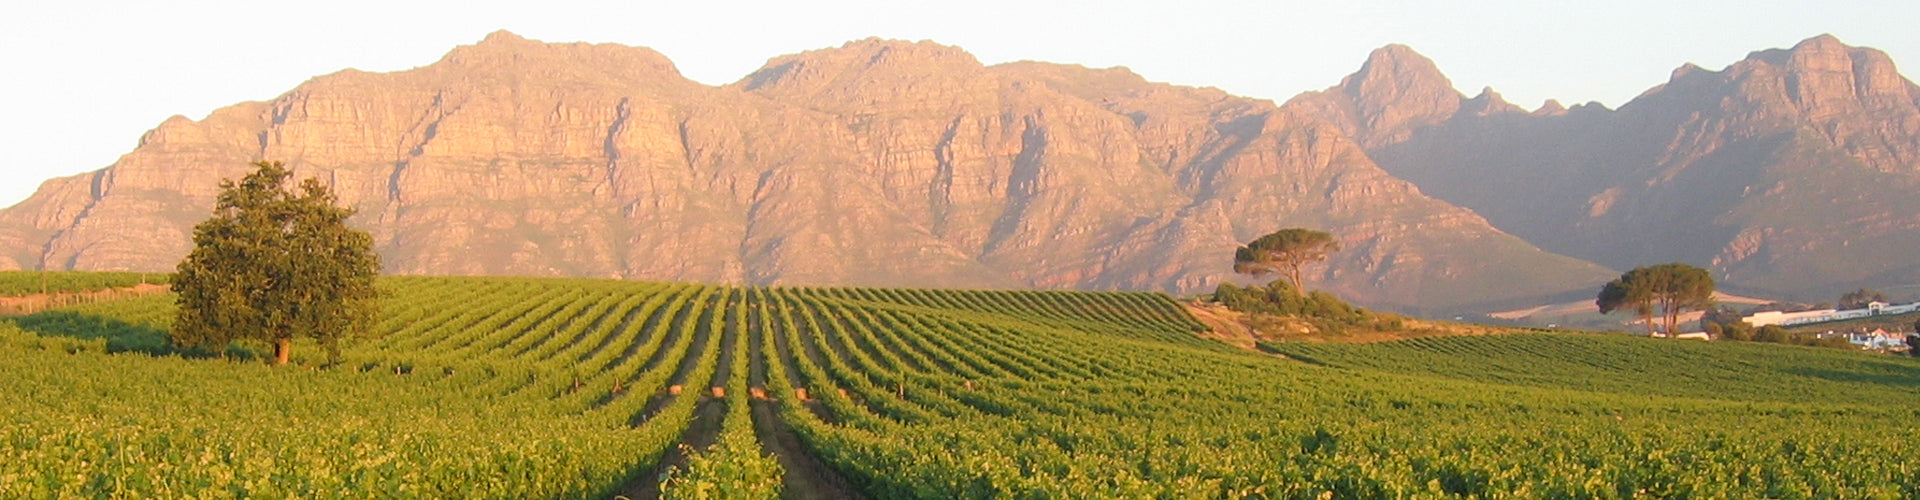 Vineyards of Klein Zalze in South Africa